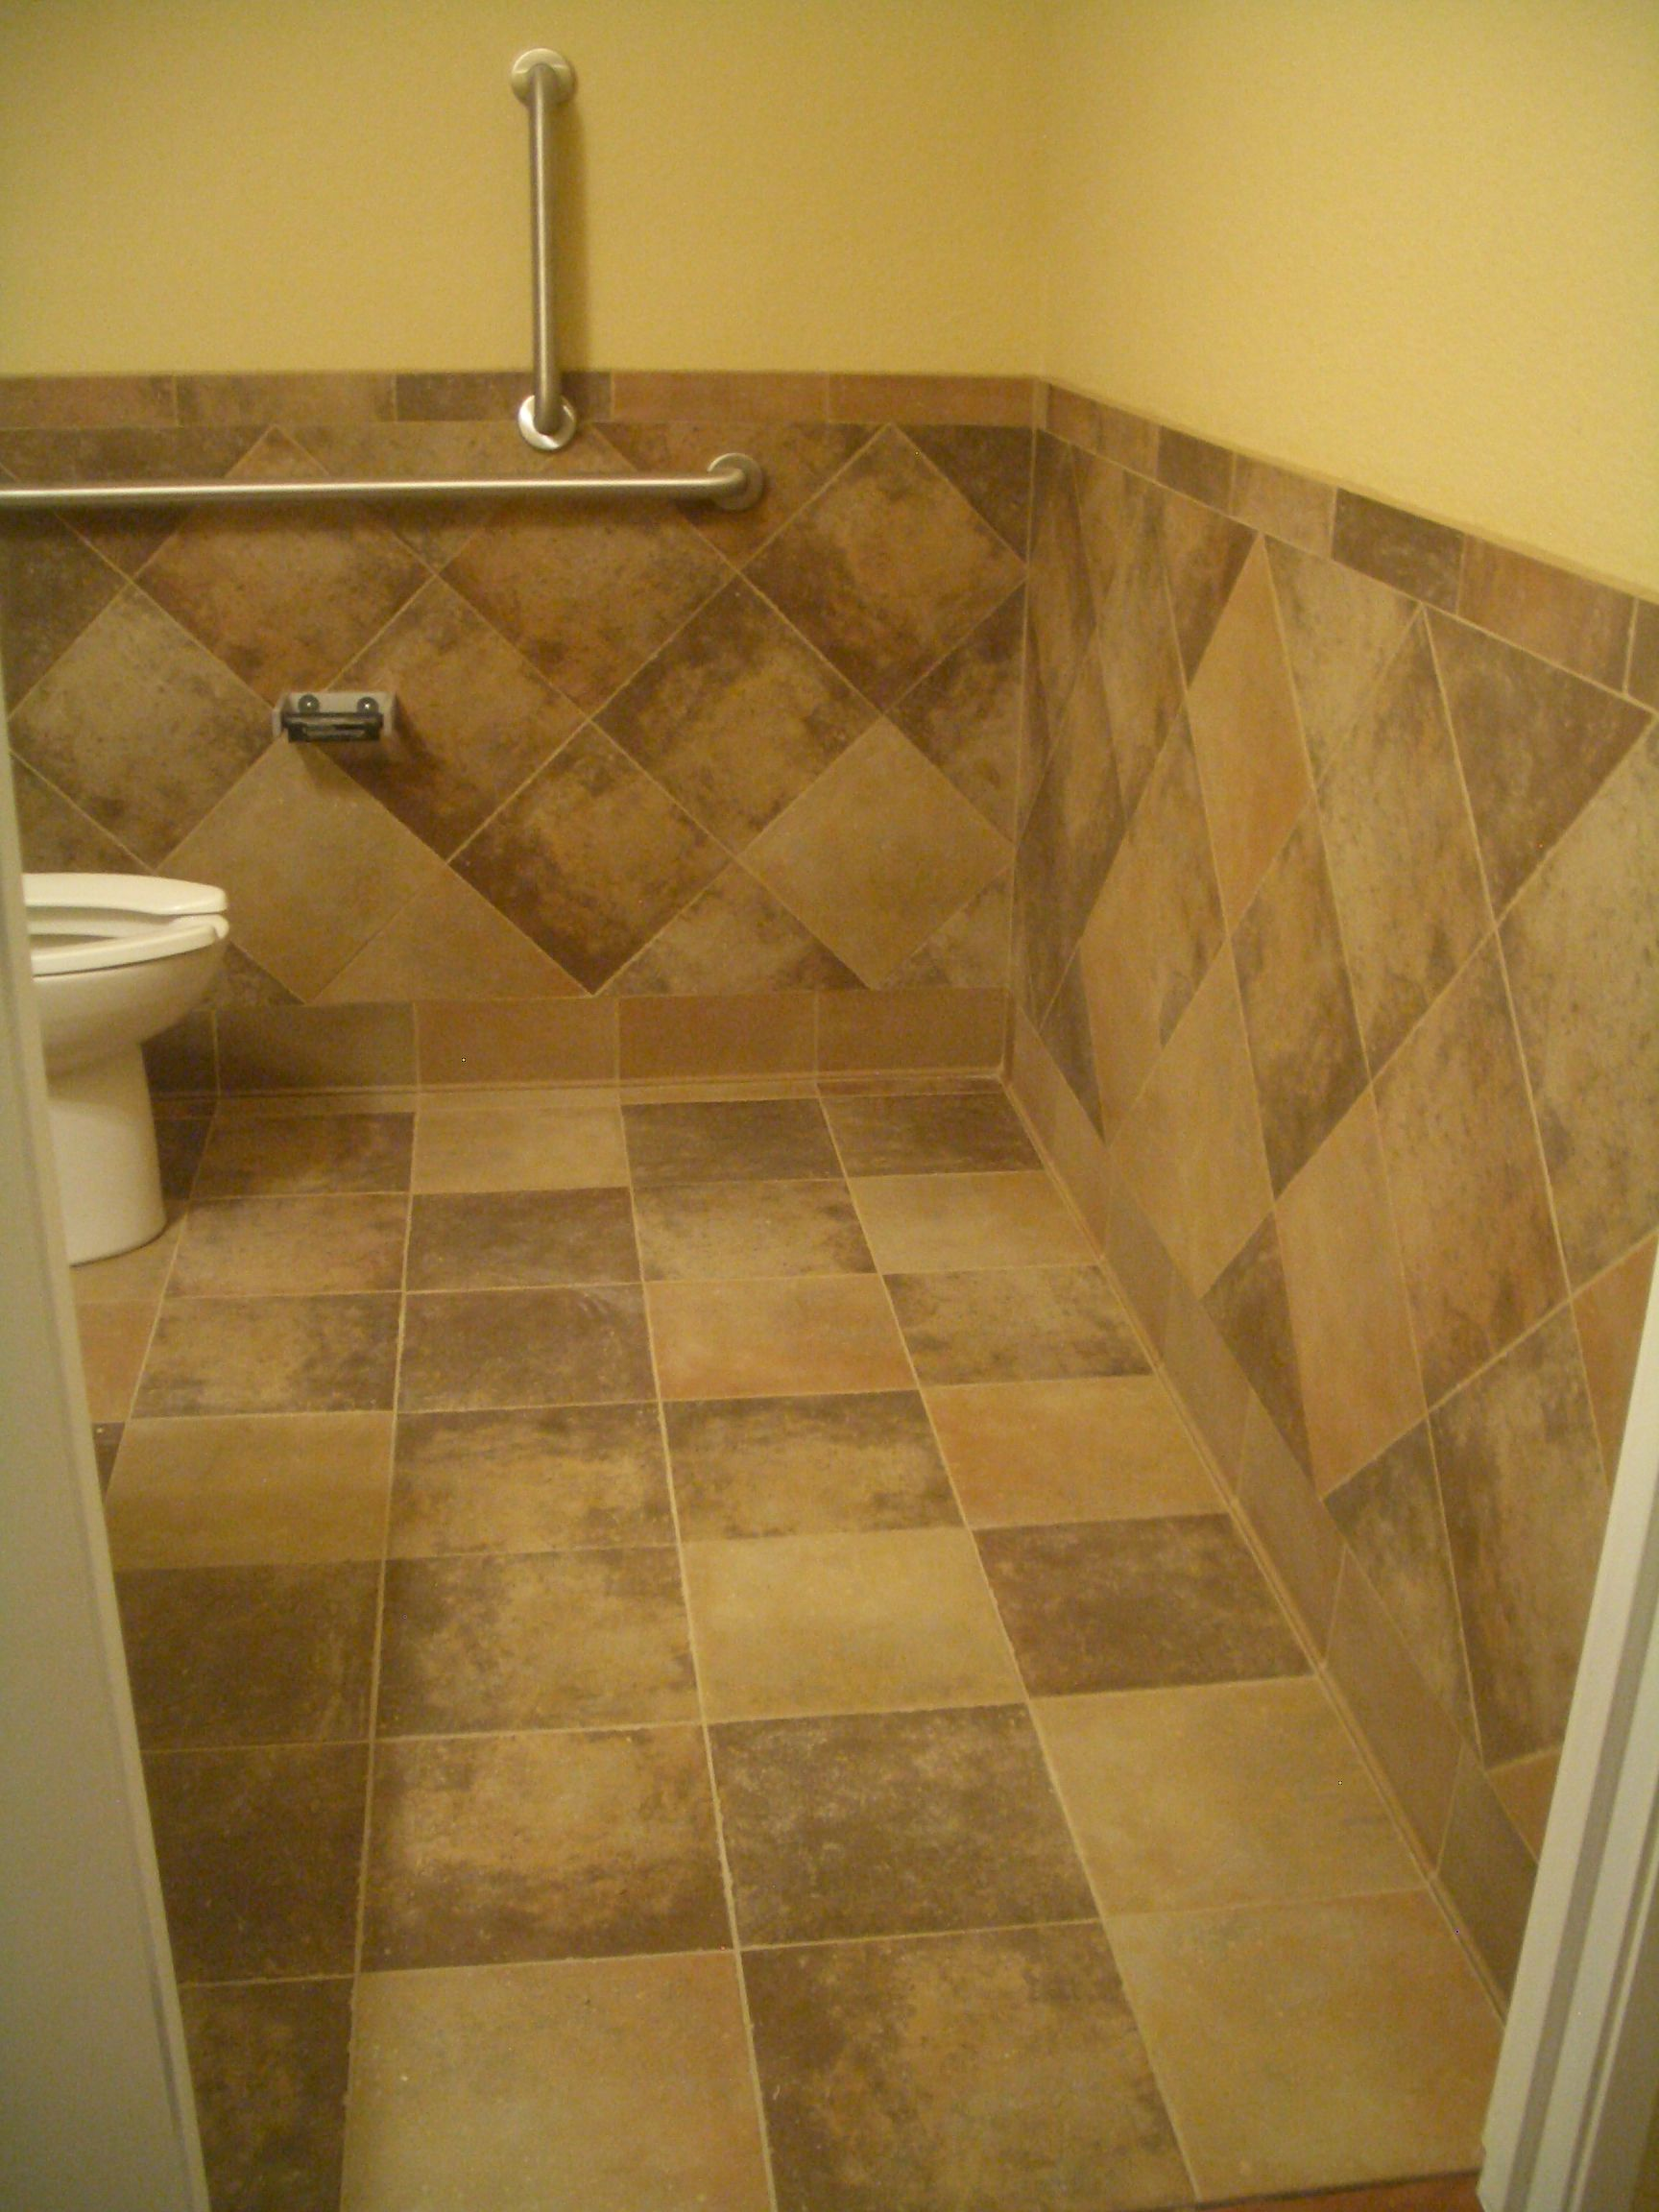 Tiled waincoating bathroom tile wainscoting bathroom ideas for bathroom wall tile underlayment toilet tiles are the most detailed facet of your own bathroom layout toilet tiles in many dailygadgetfo Choice Image